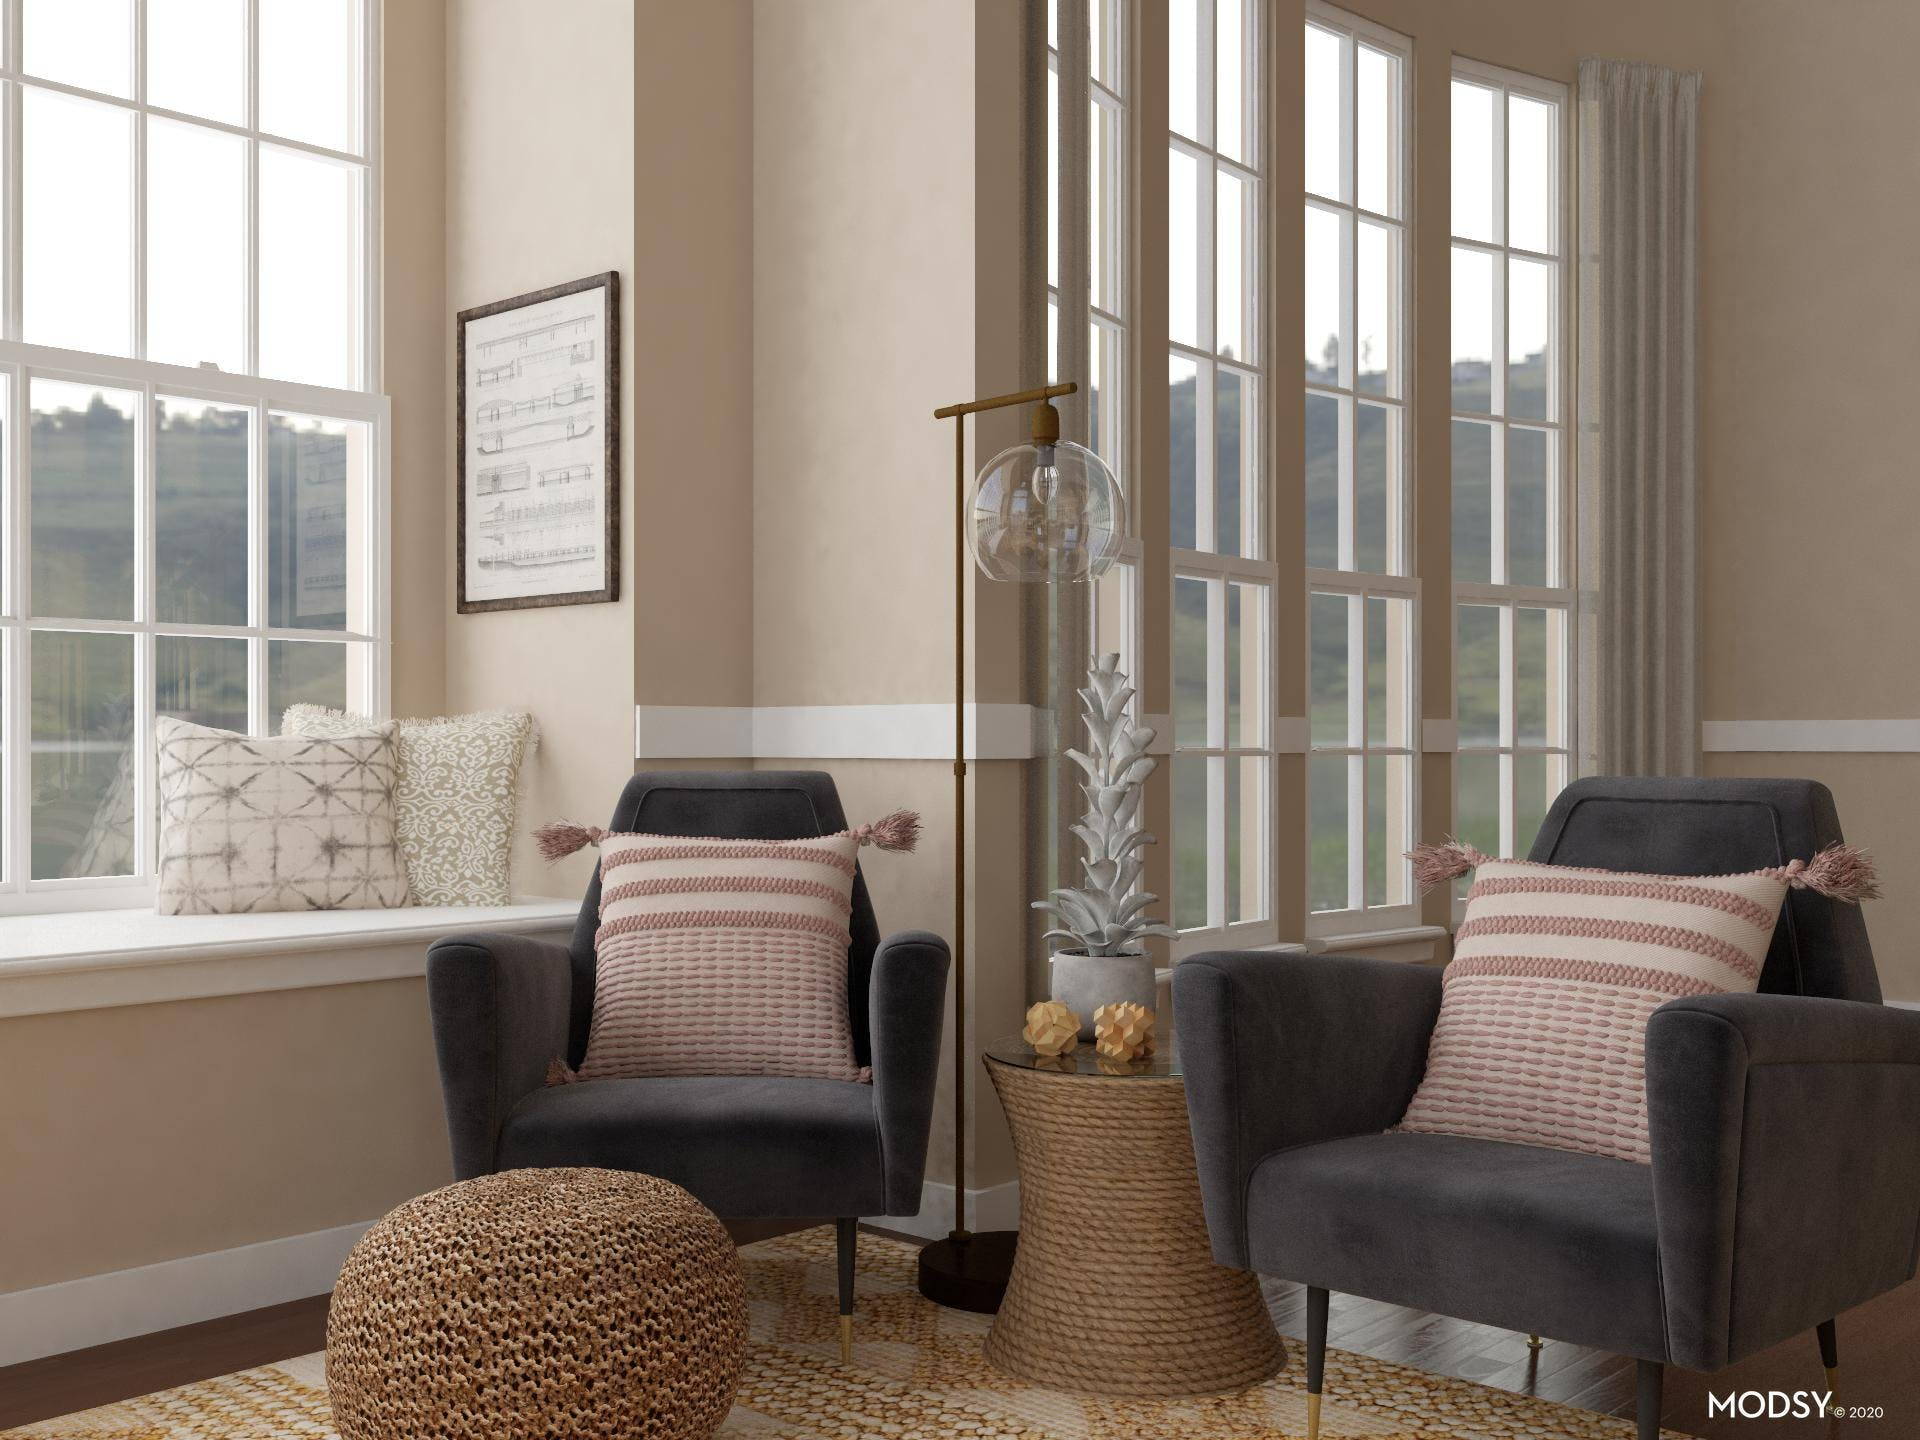 Rustic Charm With Woven Textures